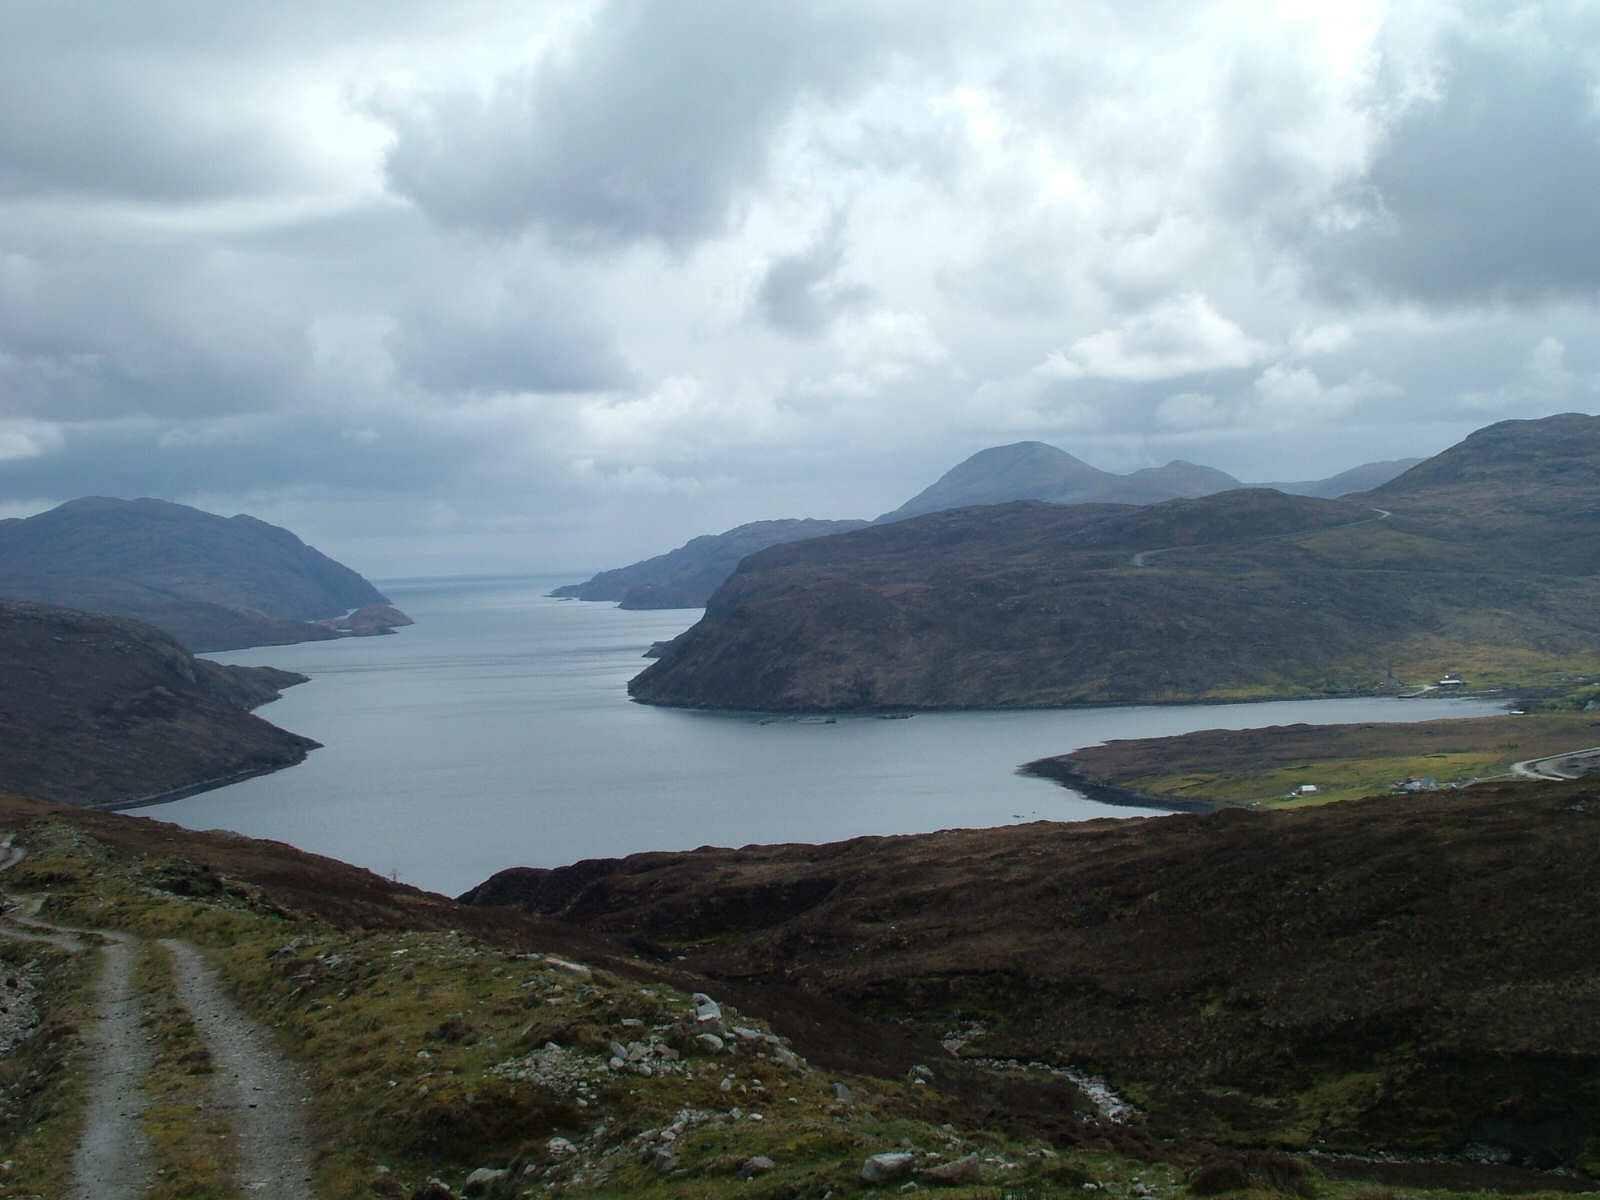 View down Loch Seaforth from Aline